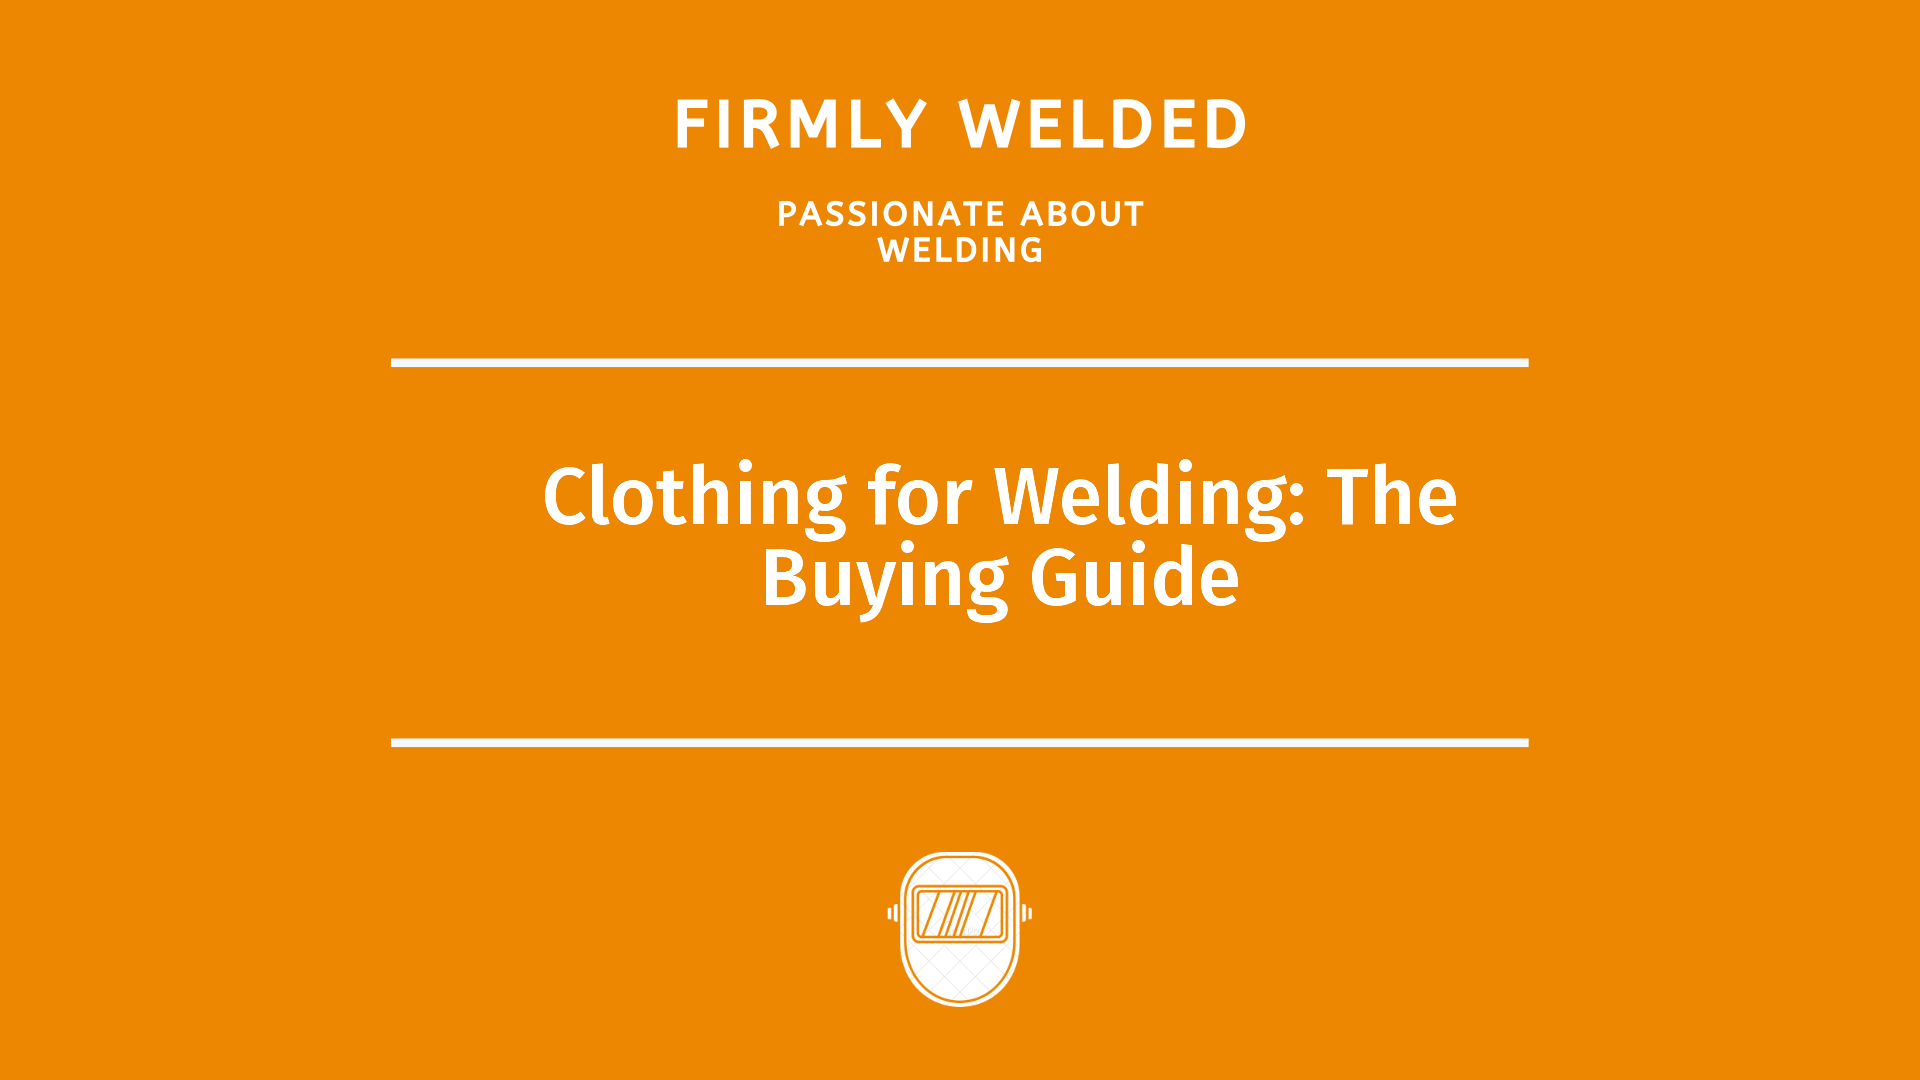 Clothing for Welding: The Buying Guide